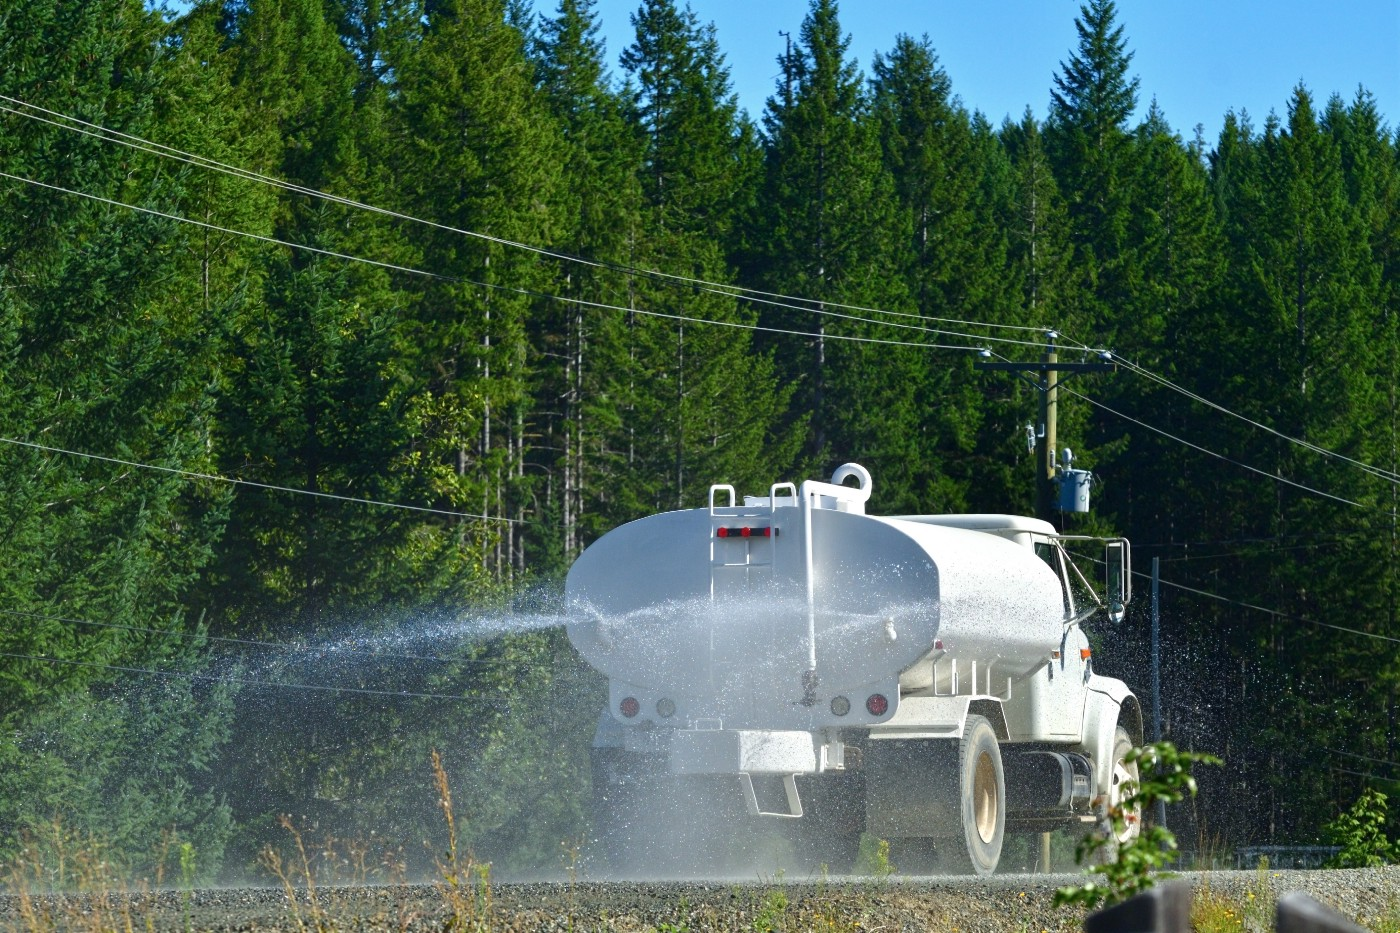 A dust suppression truck is traveling through a road surrounded by green trees while spraying water to suppress dust.